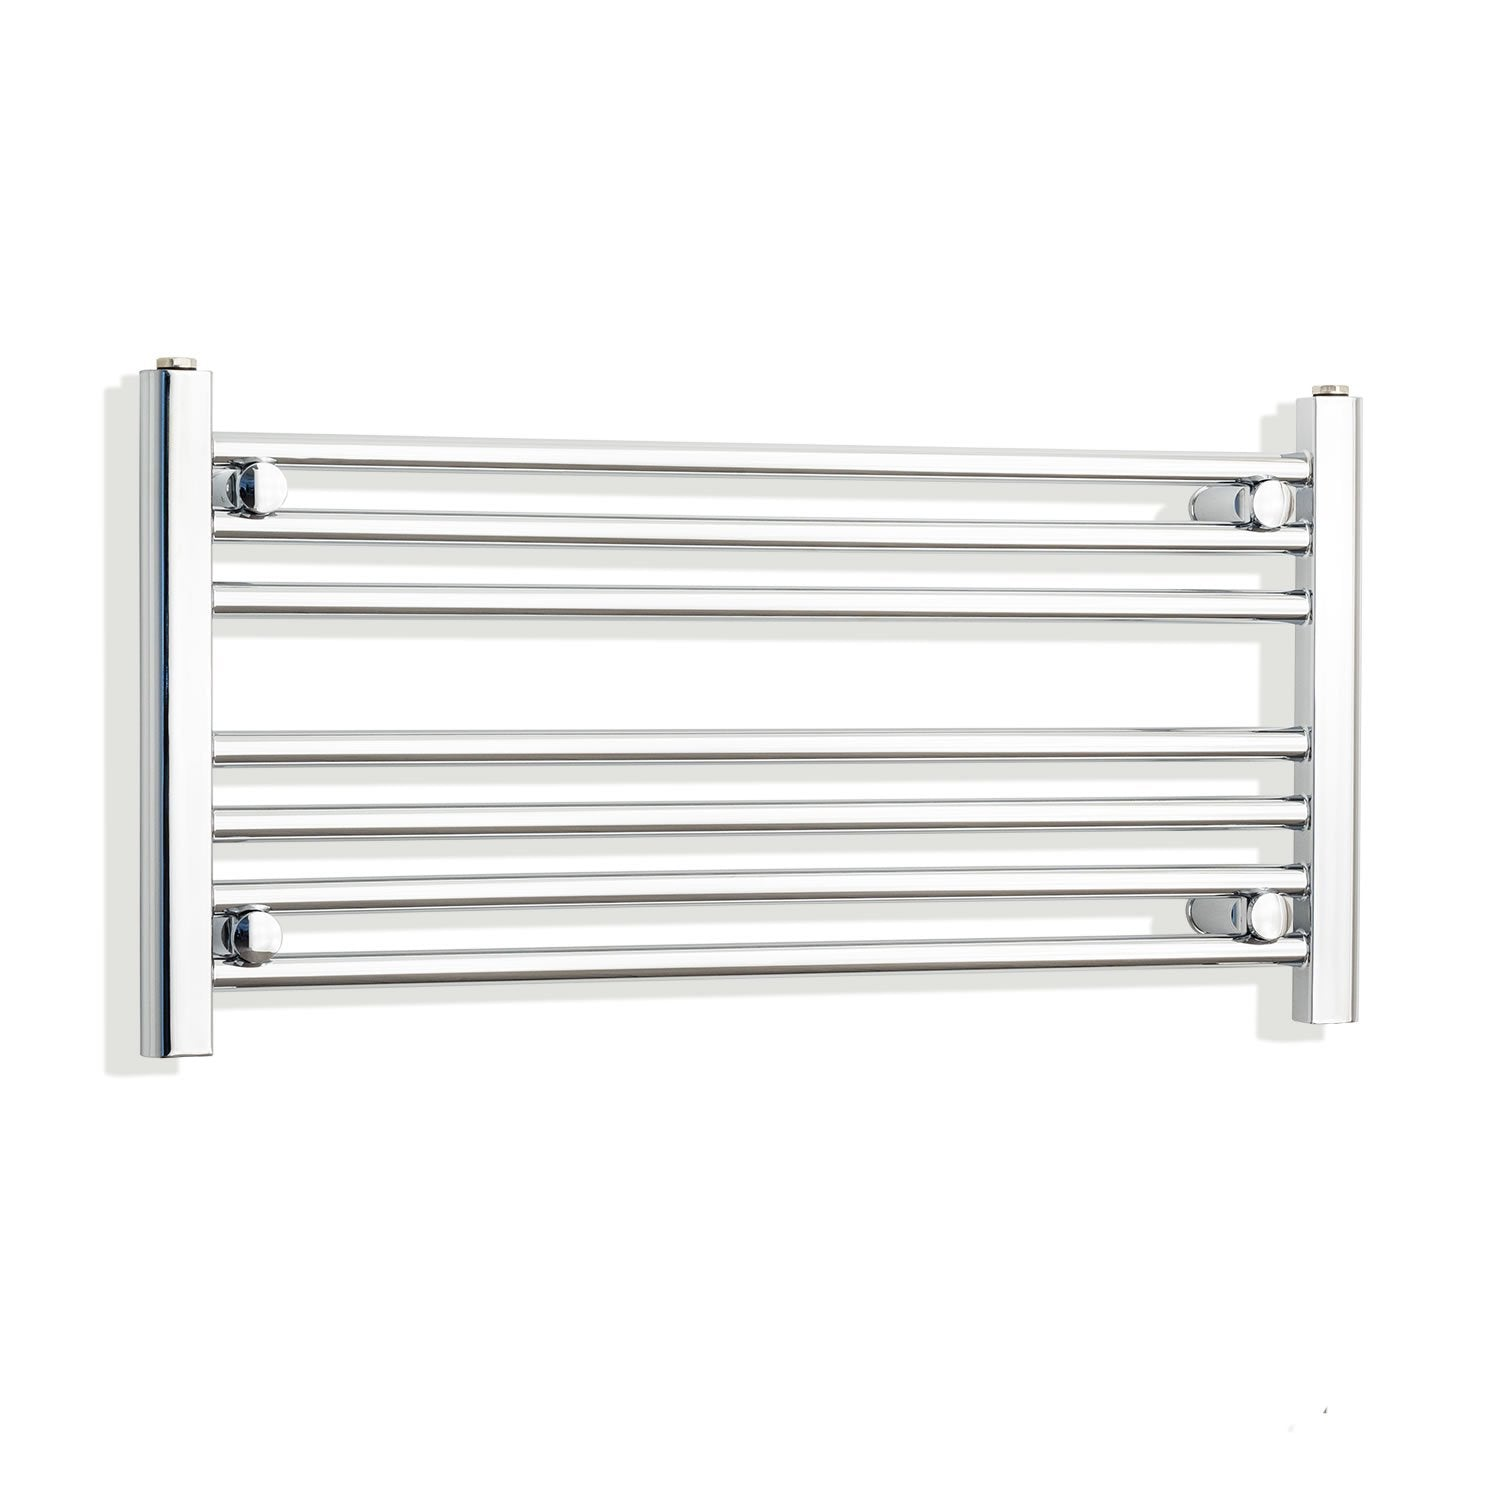 900mm Wide 400mm High Flat Chrome Heated Towel Rail Radiator HTR,Towel Rail Only